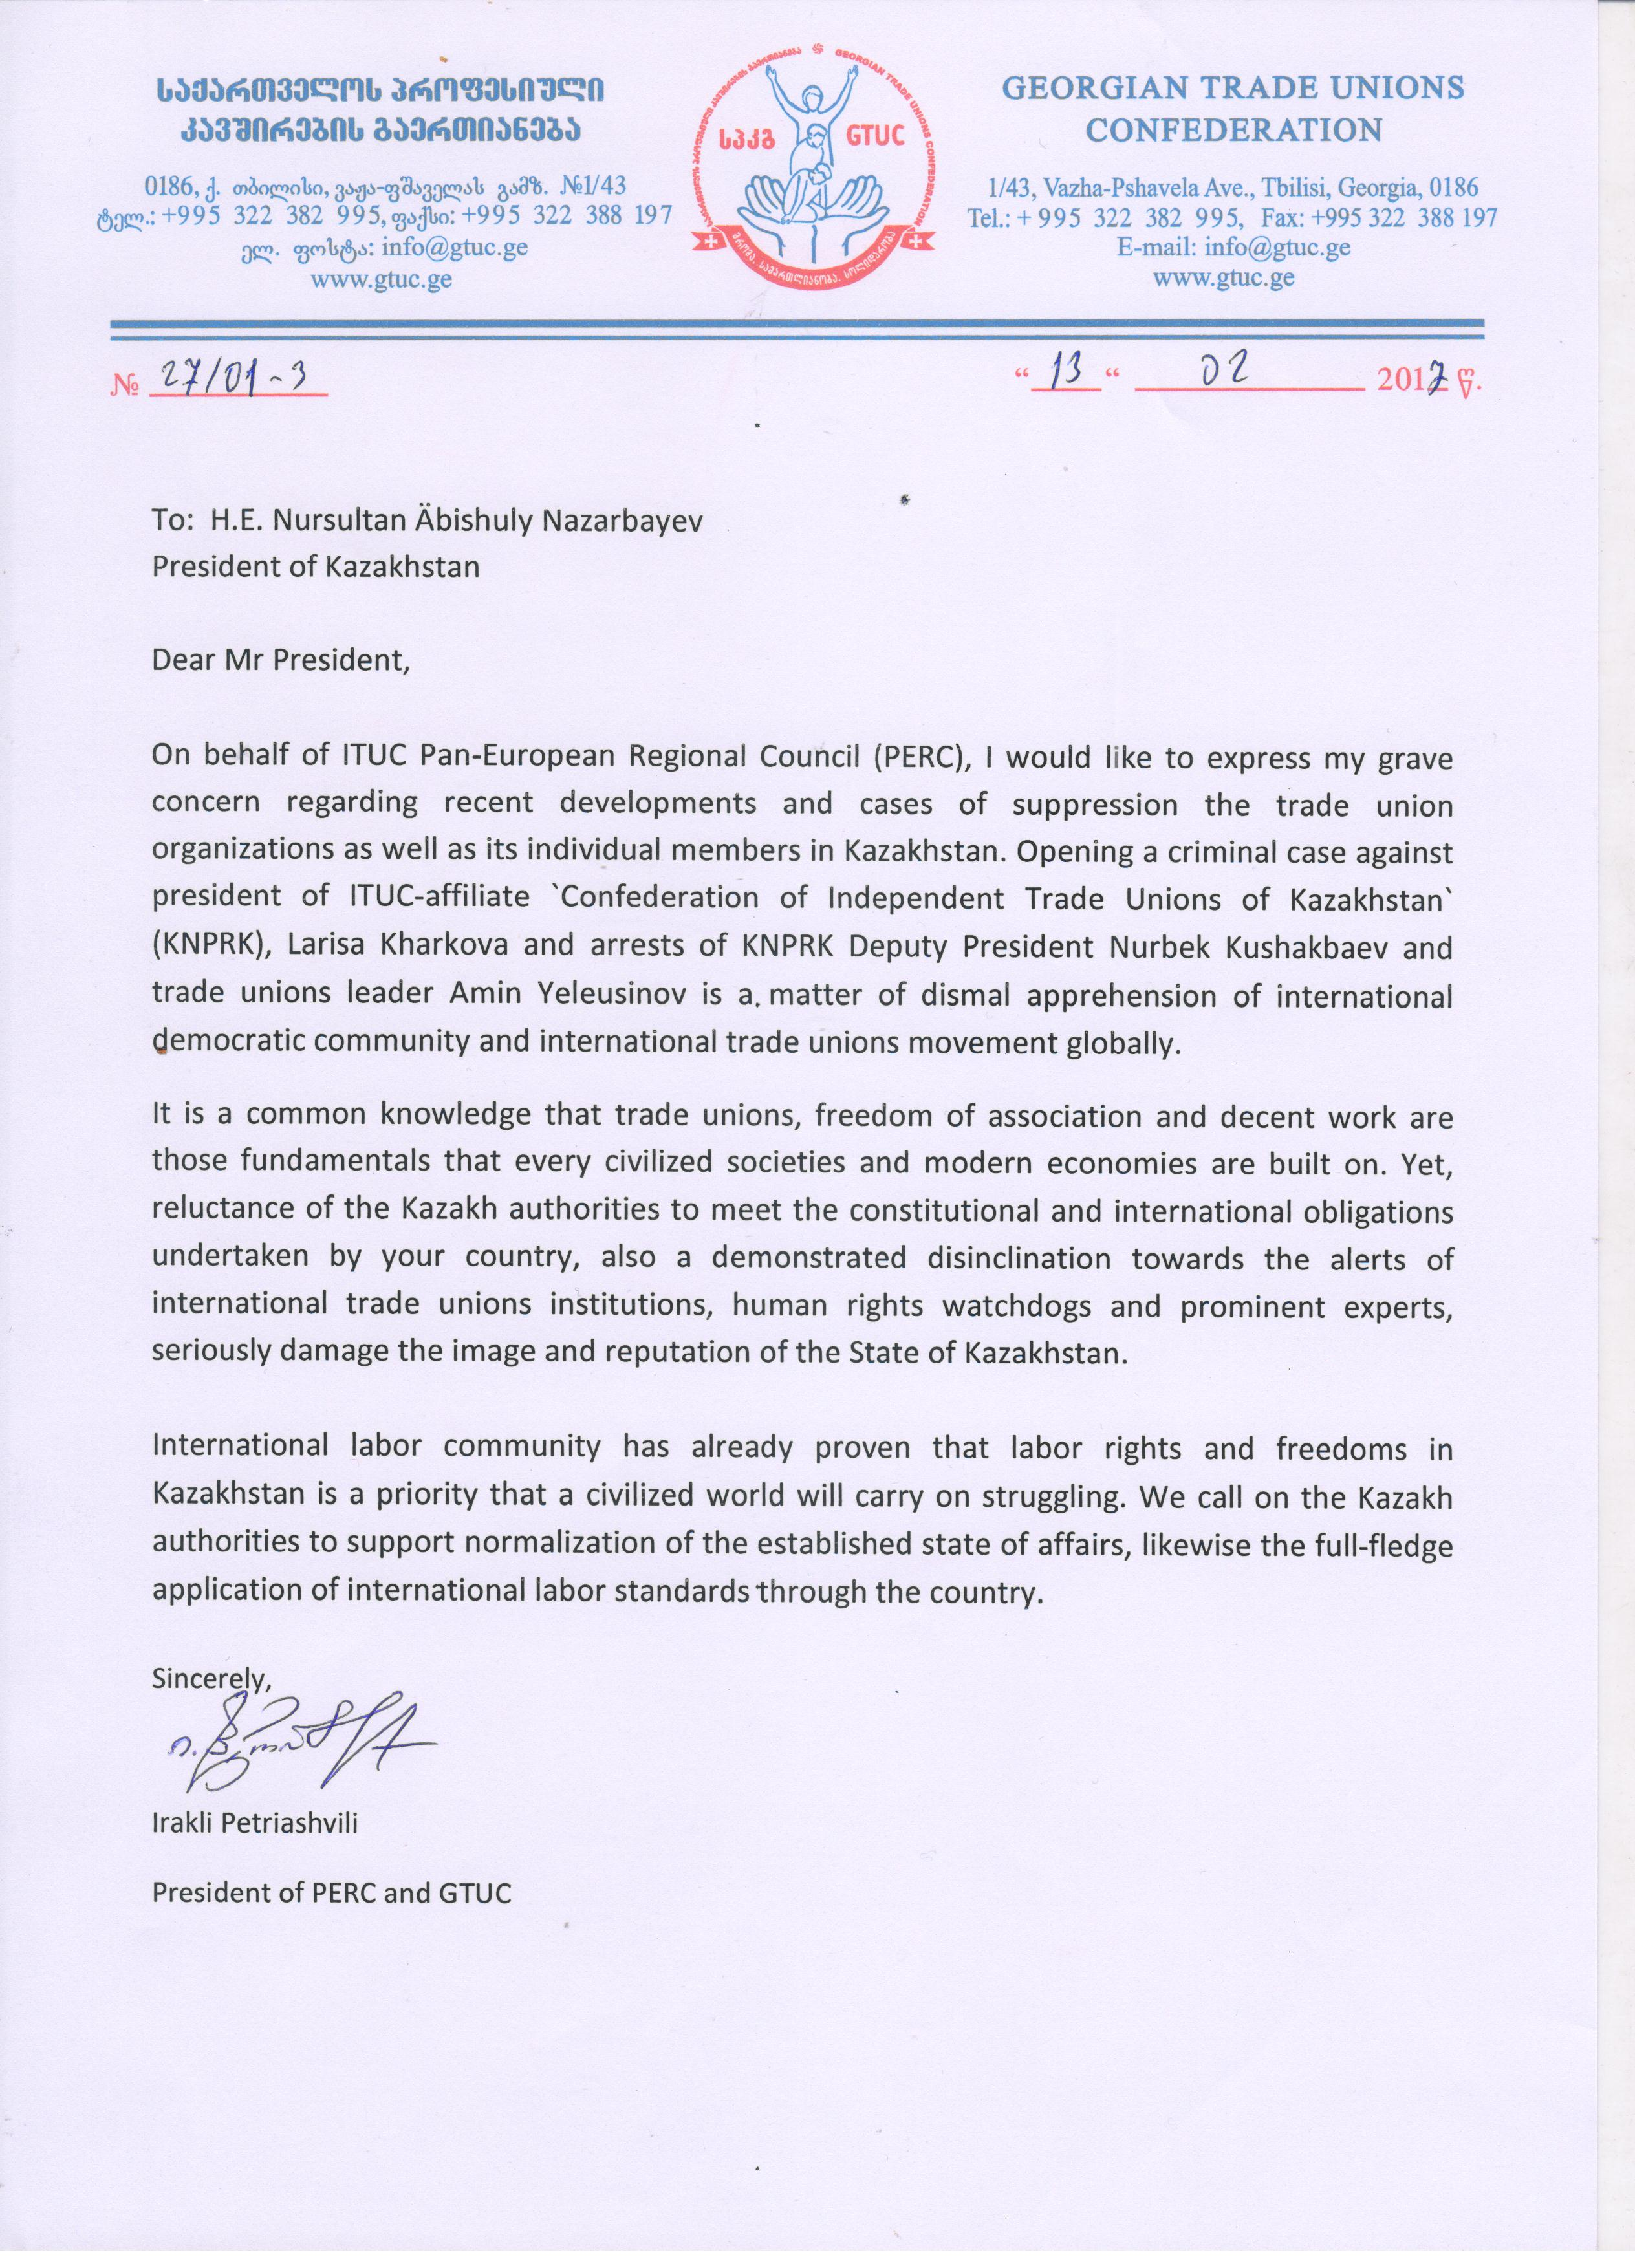 A letter to the President Nazarbayev by the President of PERC